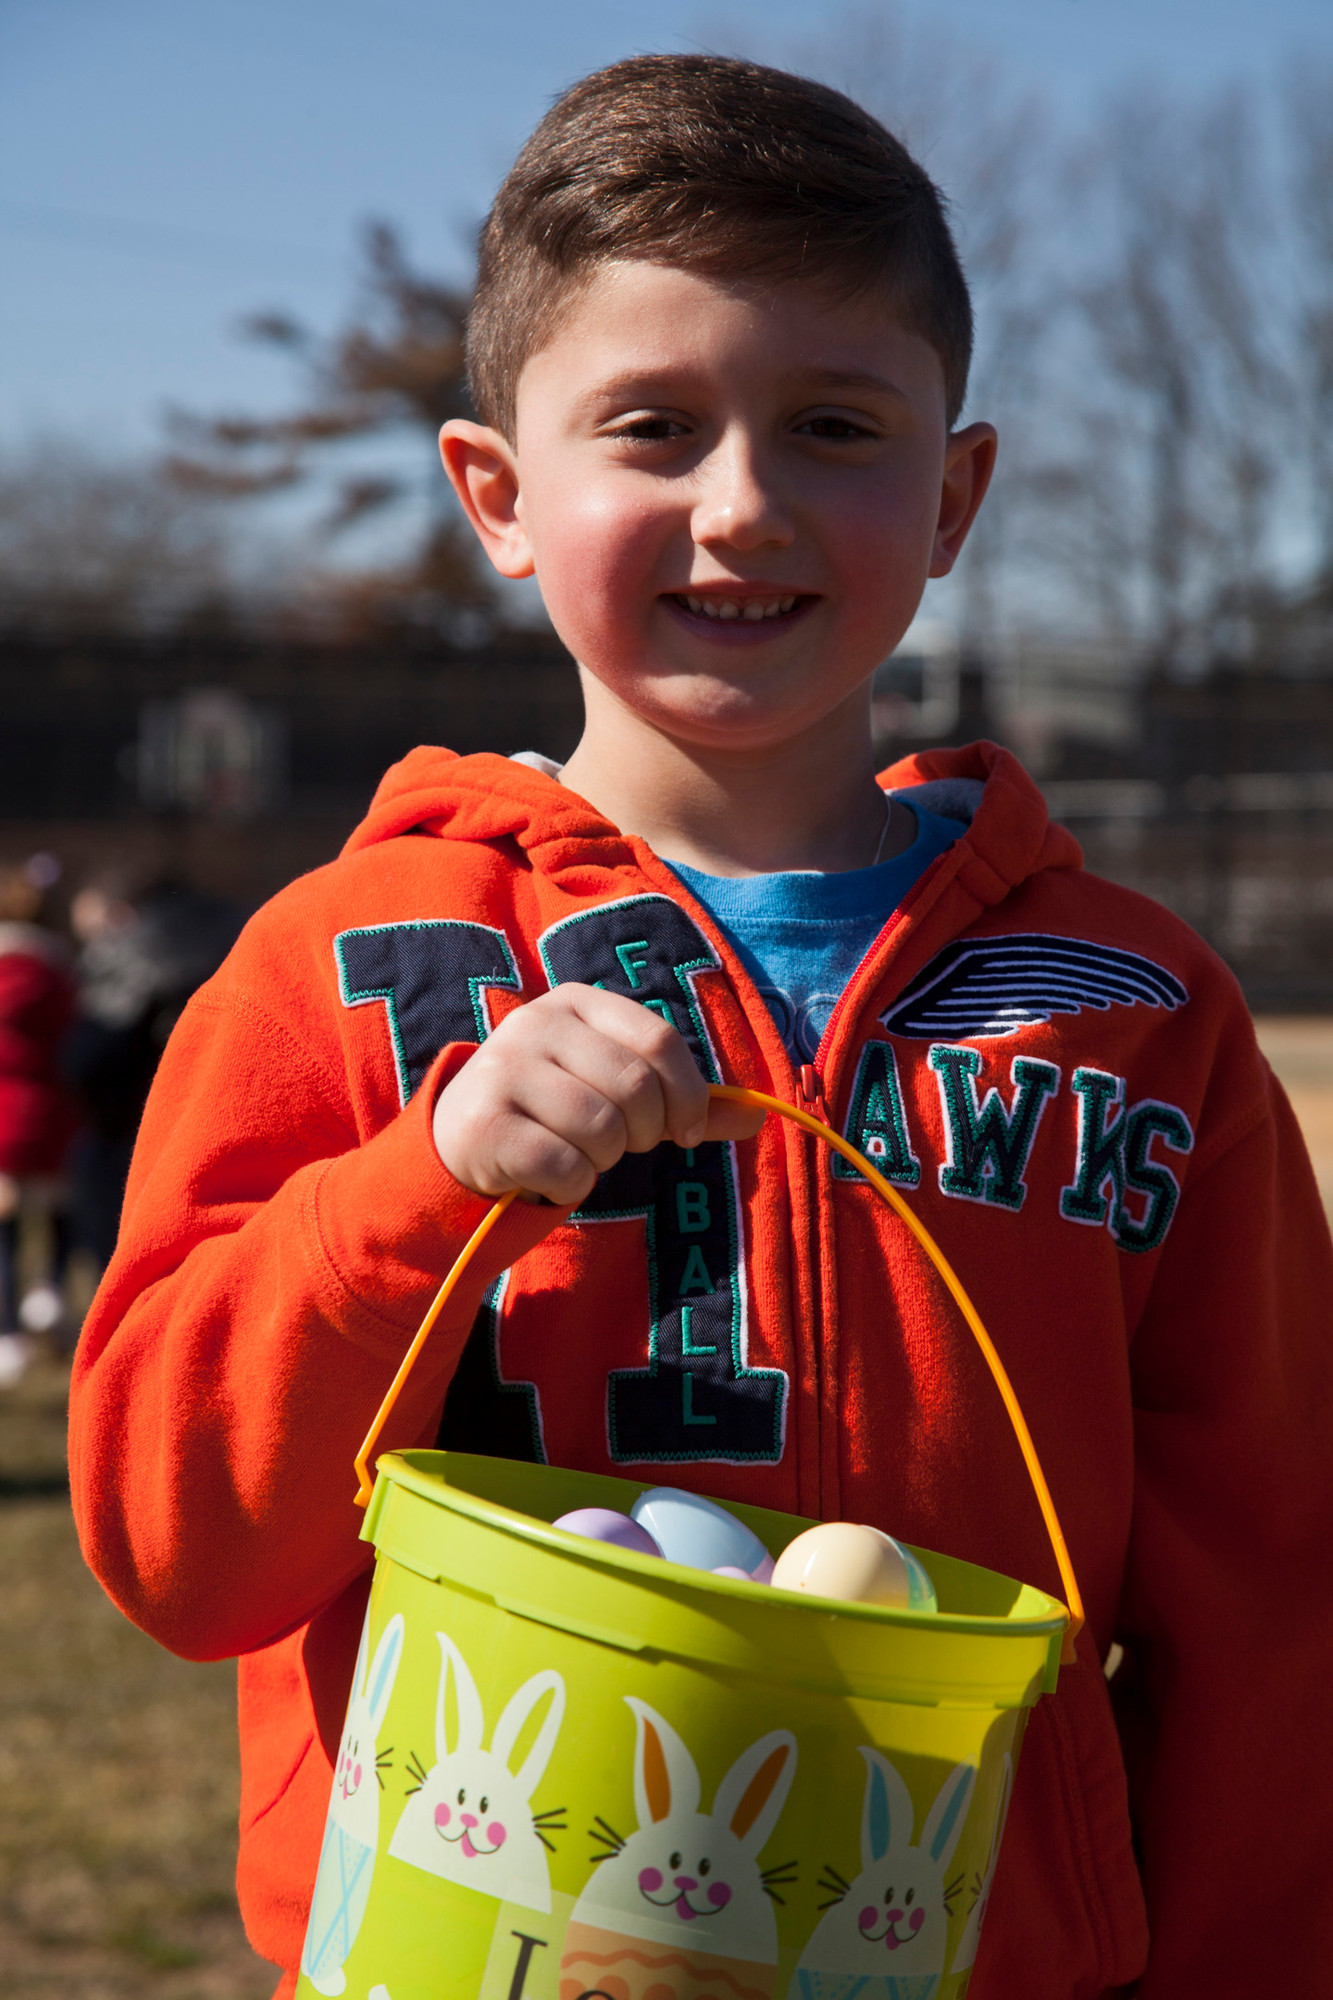 LOGAN FINK, 5, showed all of the eggs that he collected after the hunt.